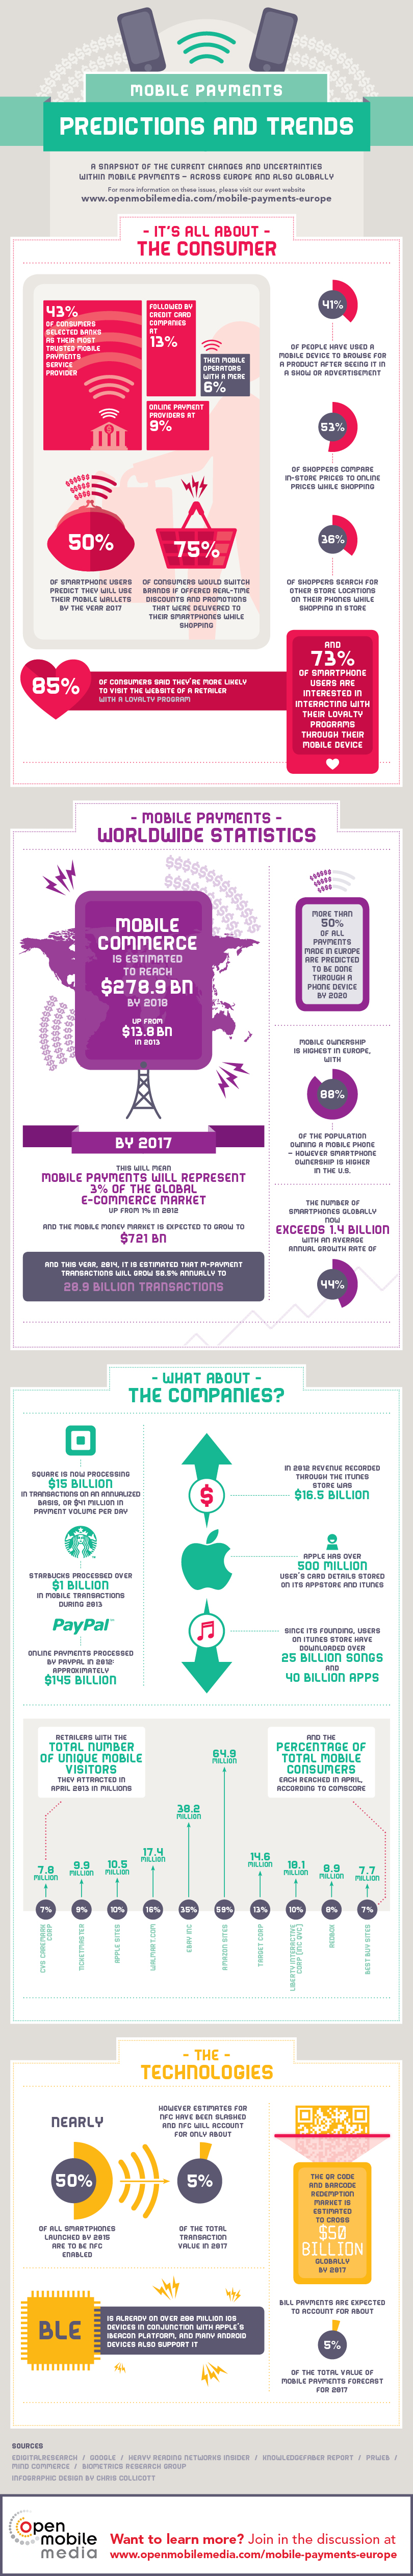 The Mobile Payments Infographic